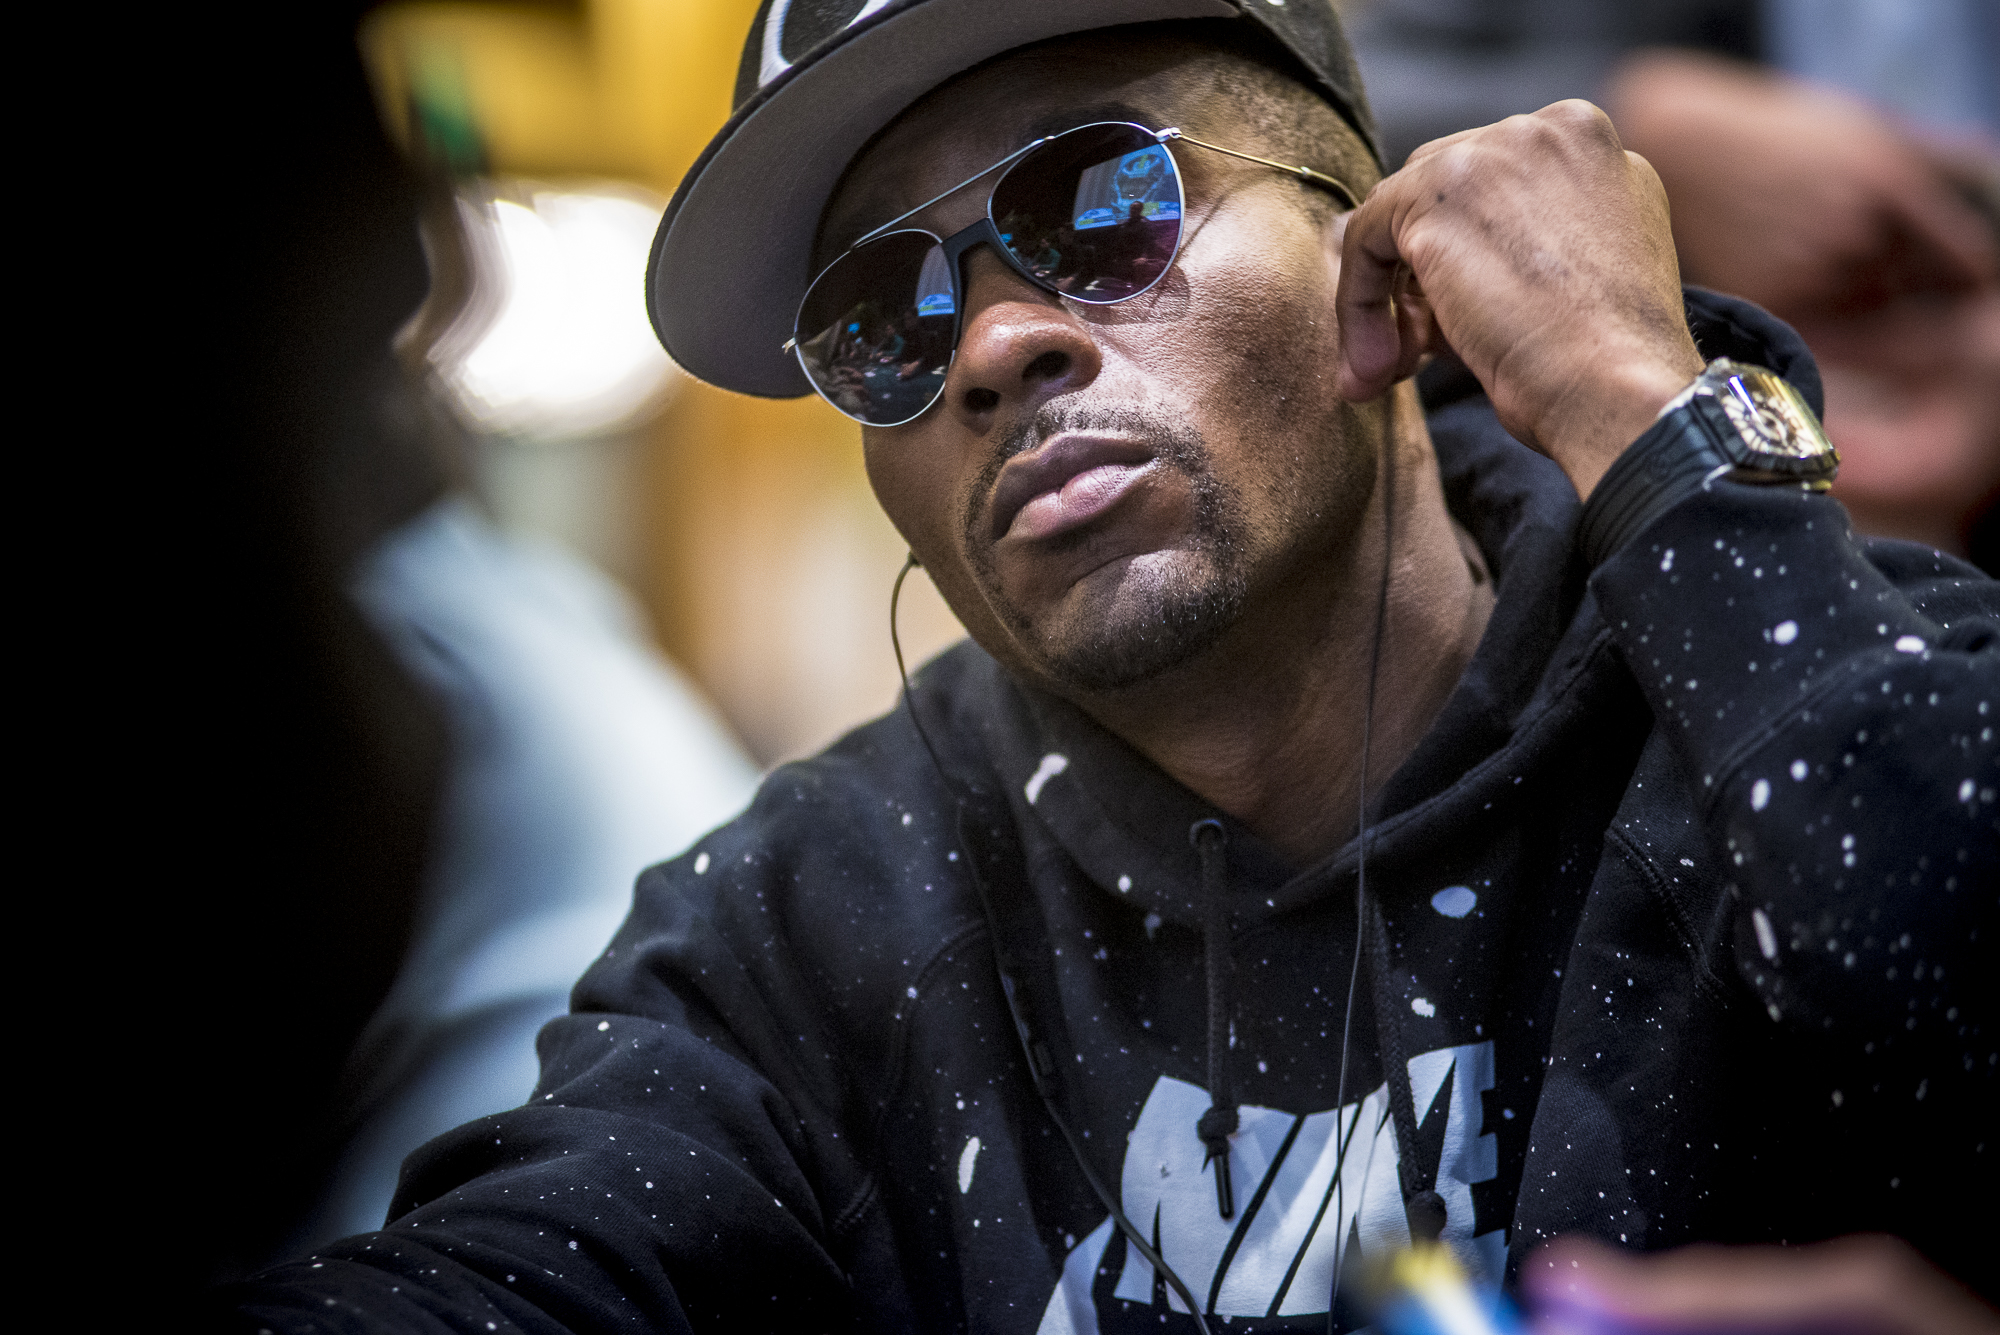 WPTDeepStacks_Dantonio Brown_Amato_AA45360.jpg